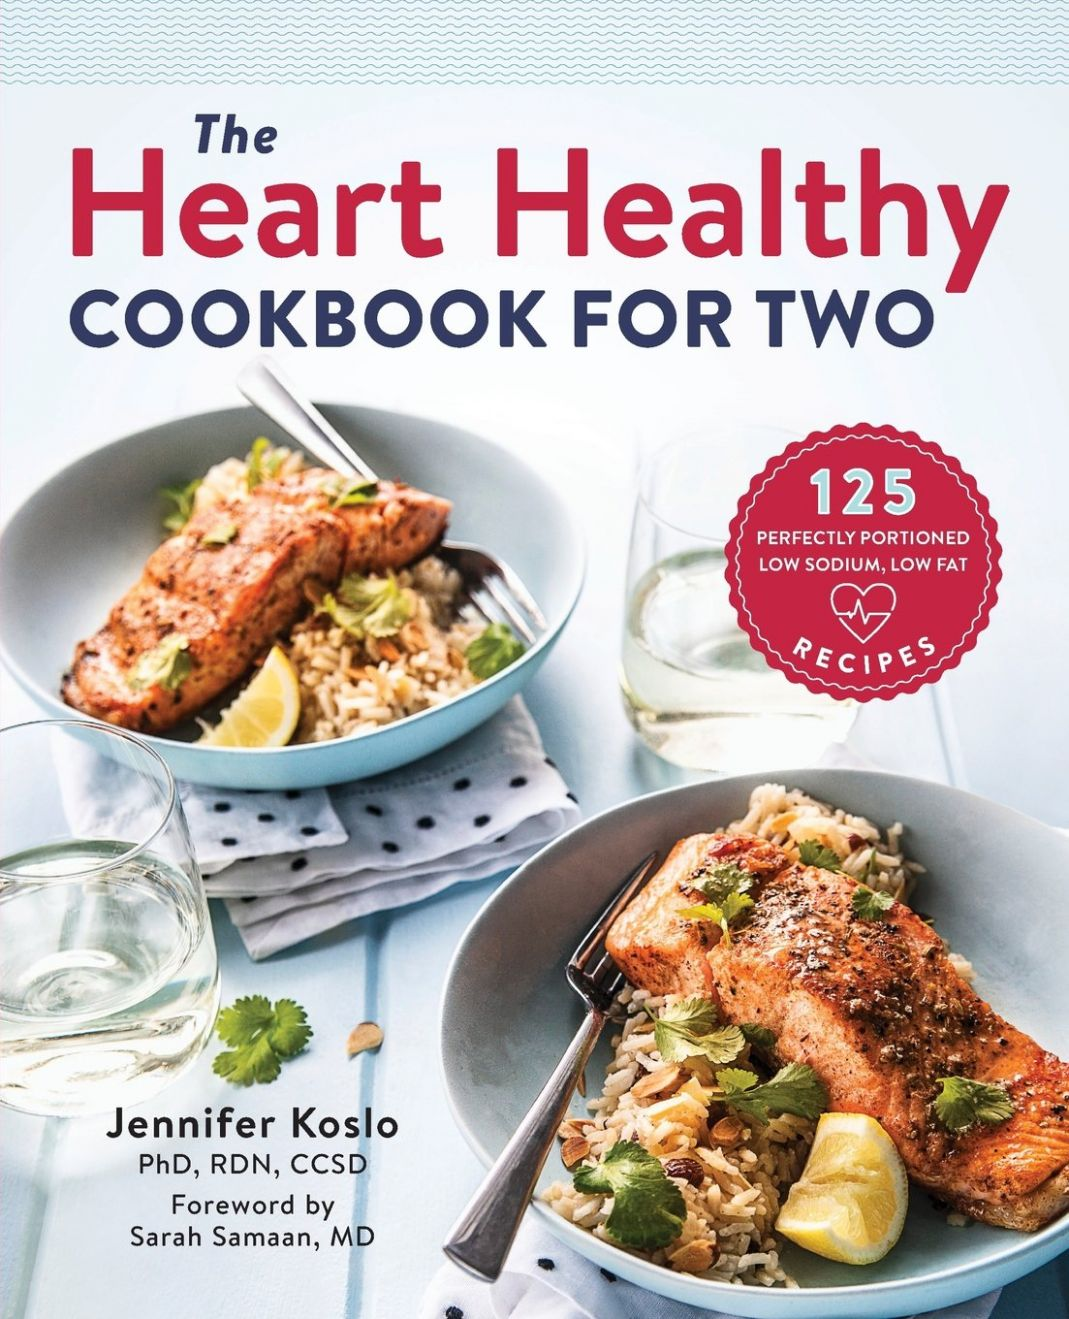 The Heart Healthy Cookbook for Two: 9 Perfectly Portioned Low ..